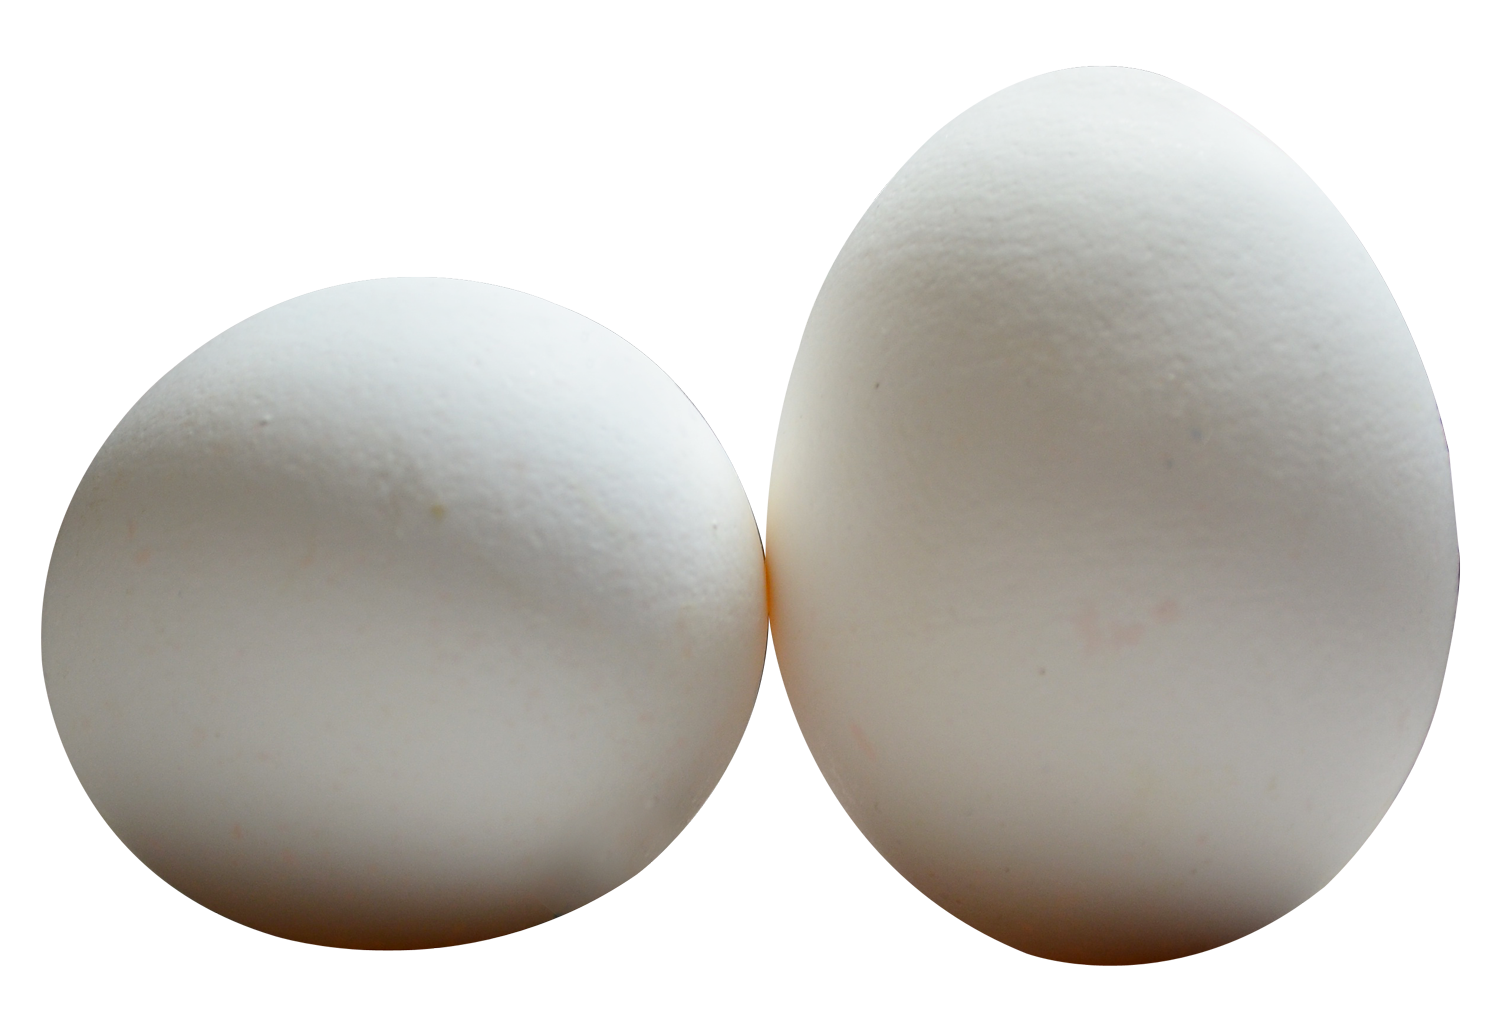 clipart stock Eggs transparent. Egg png images pngpix